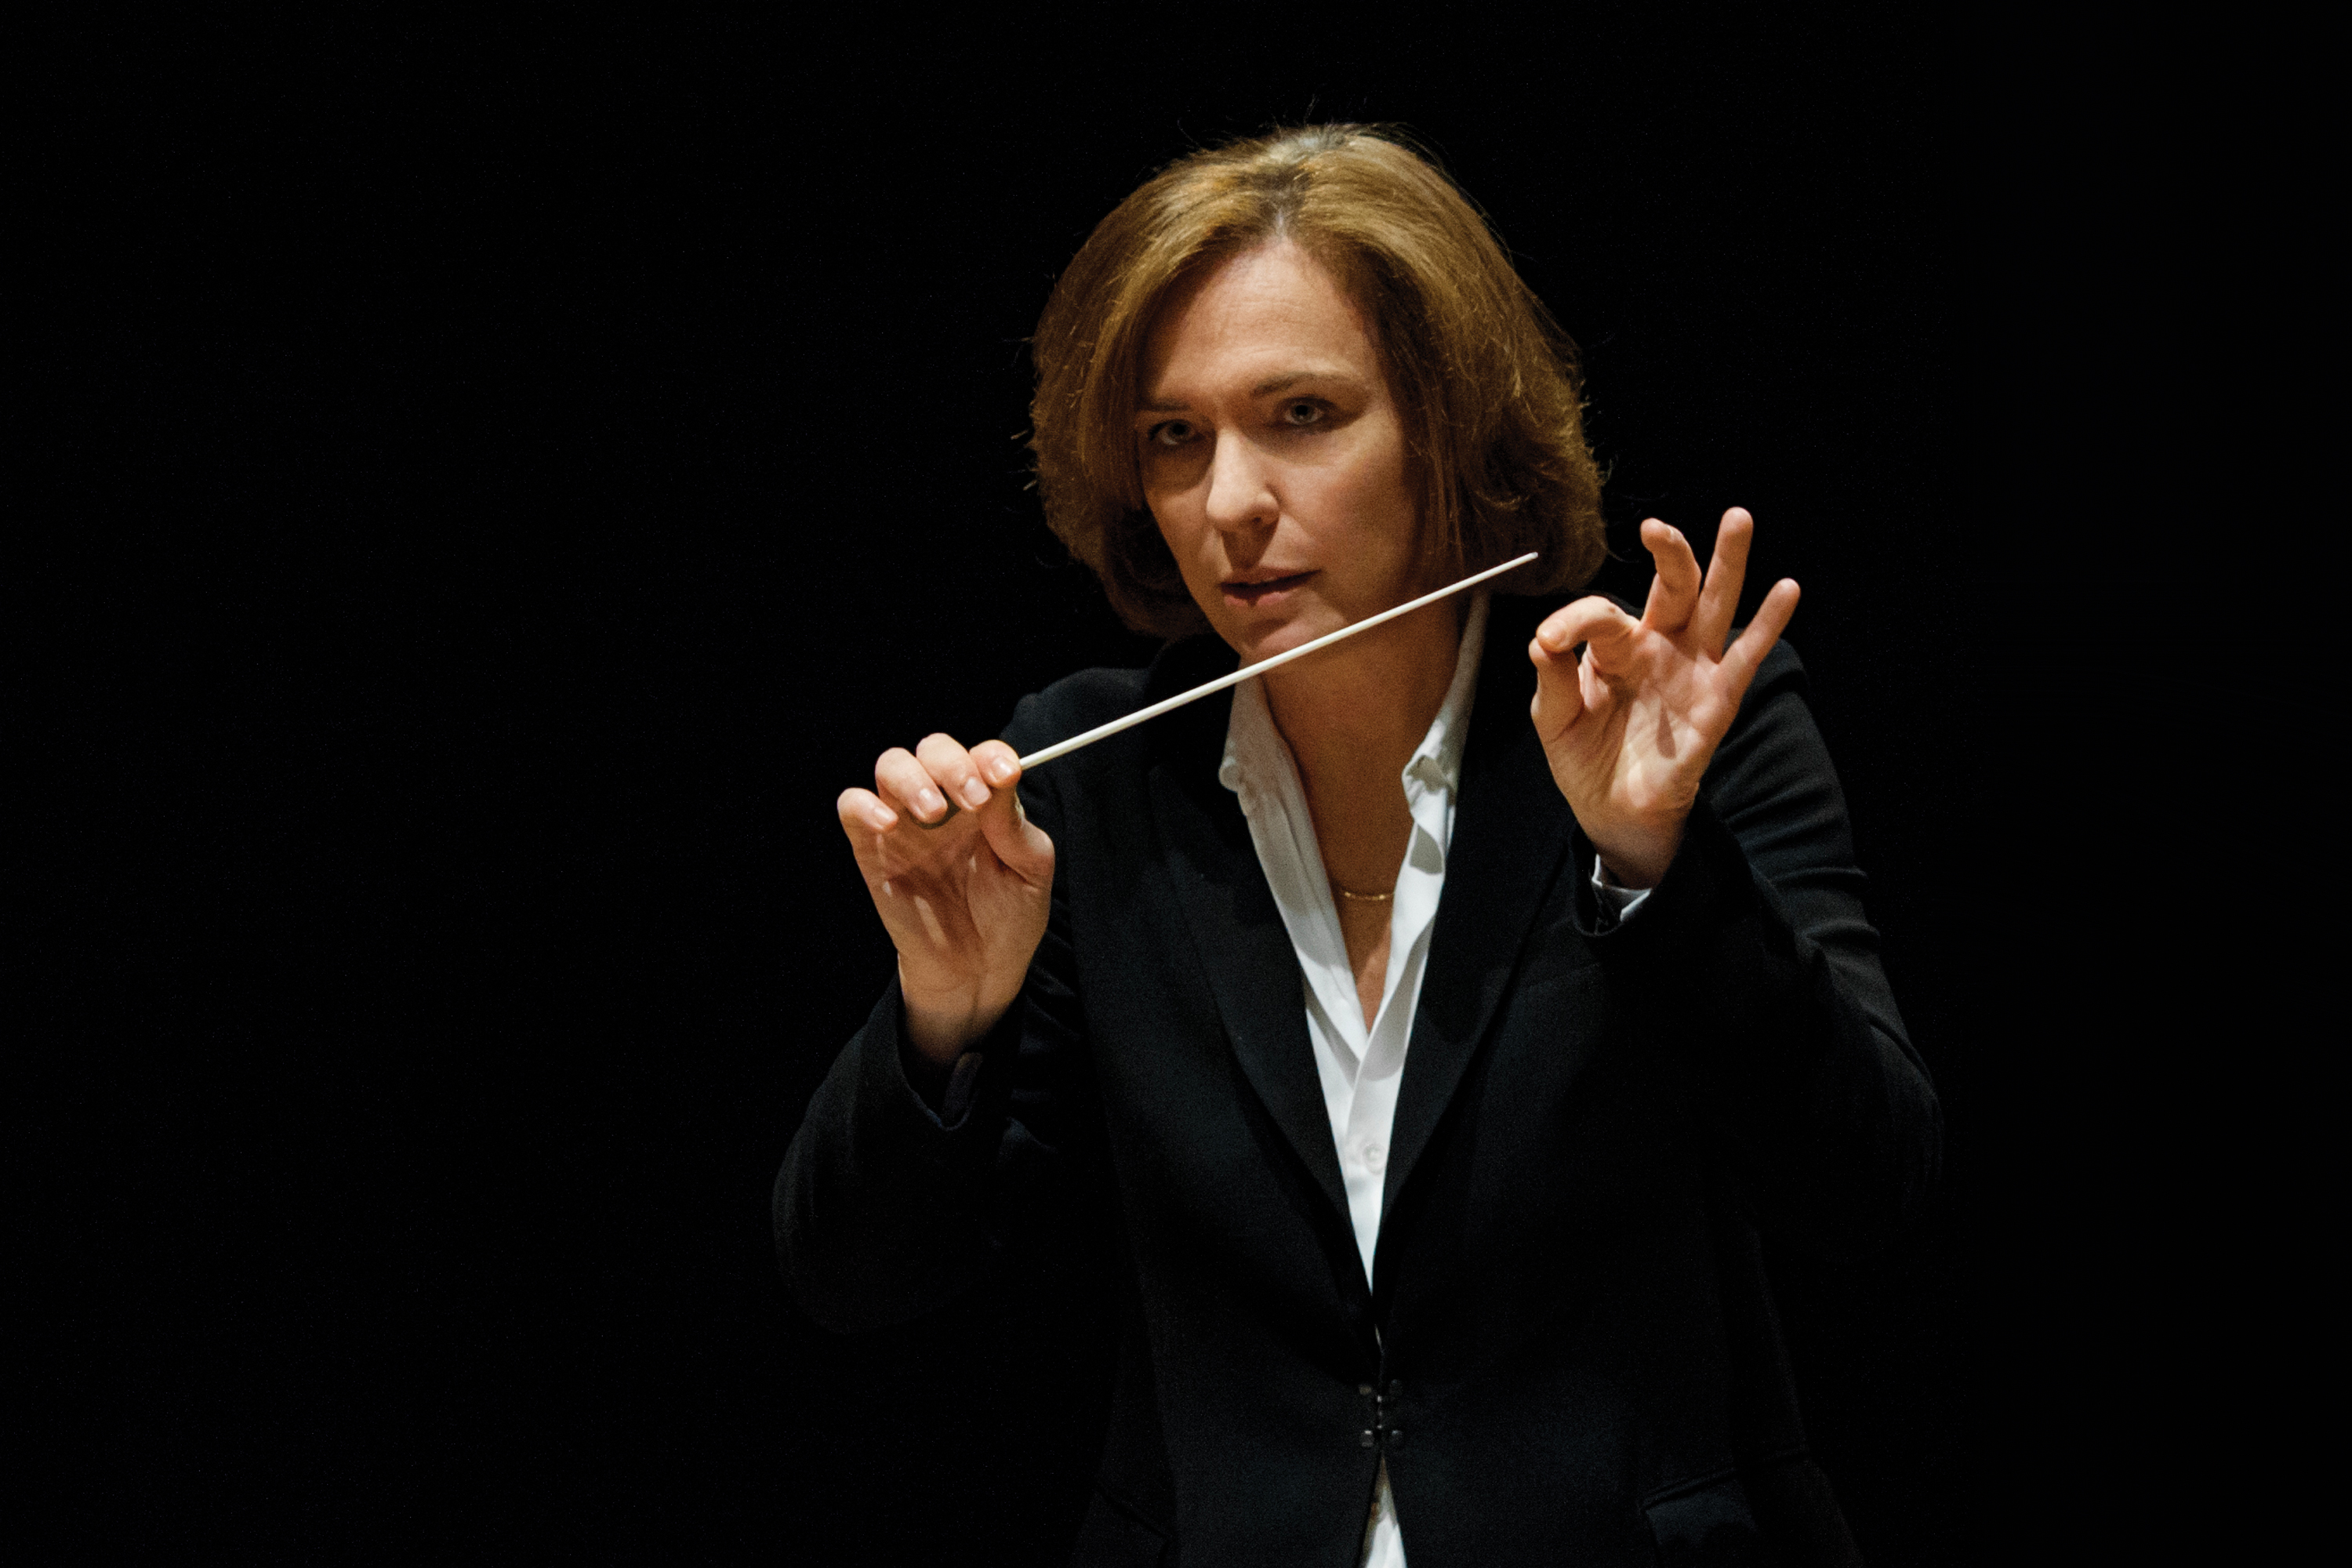 Laurence Equilbey conducts Brahms's German Requiem in Lisbon and Paris 3